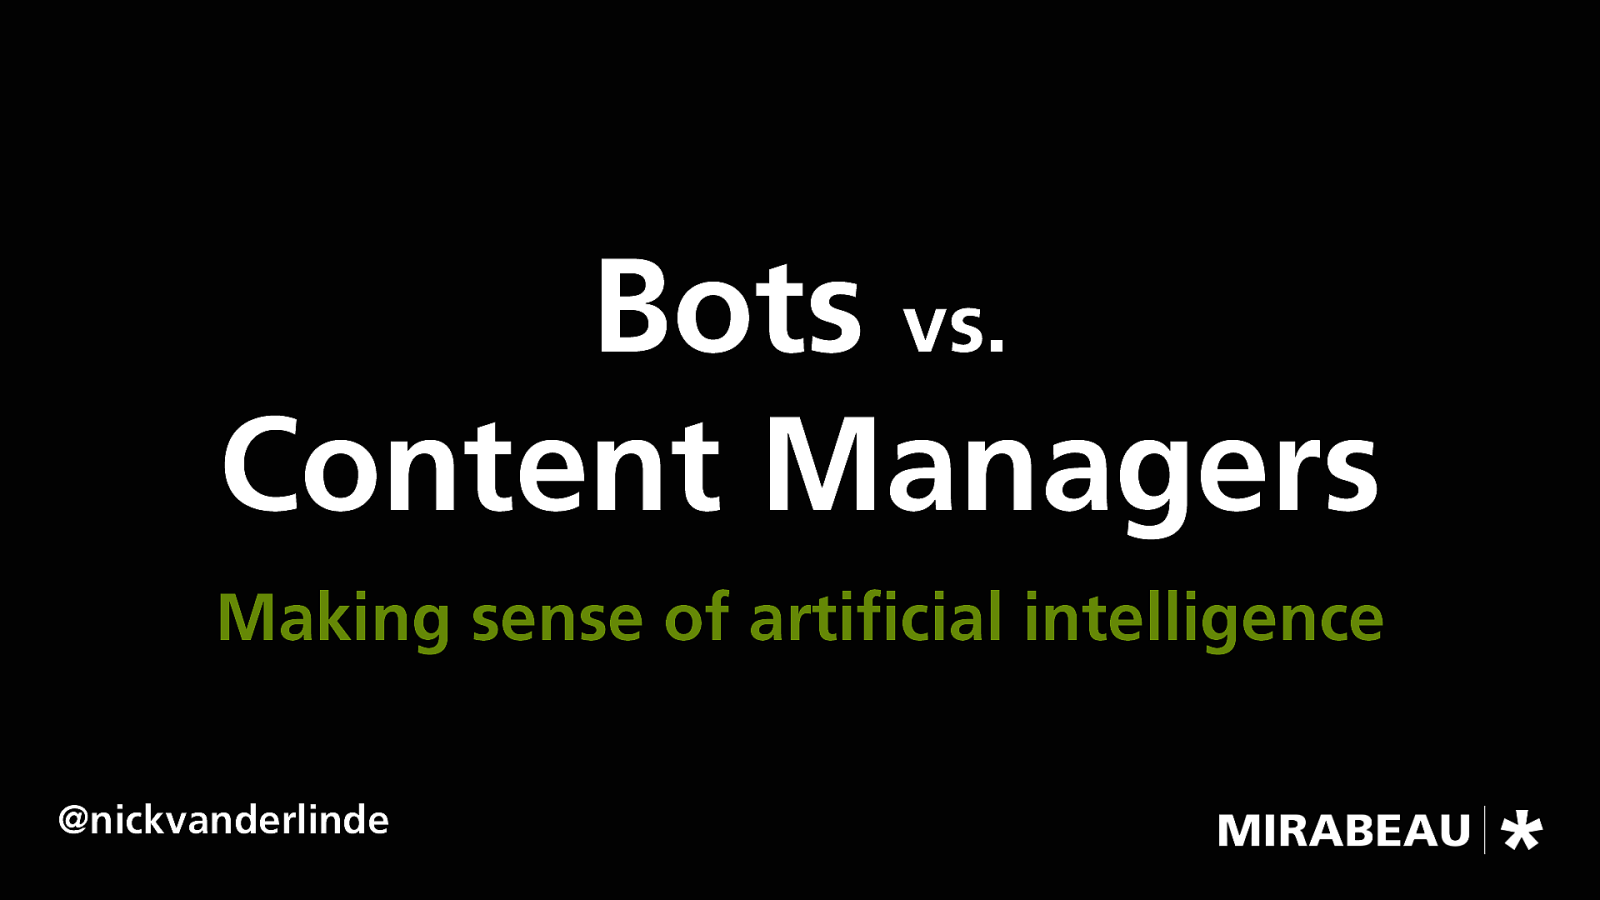 Bots vs. Content Managers – Making Sense of Artificial Intelligence